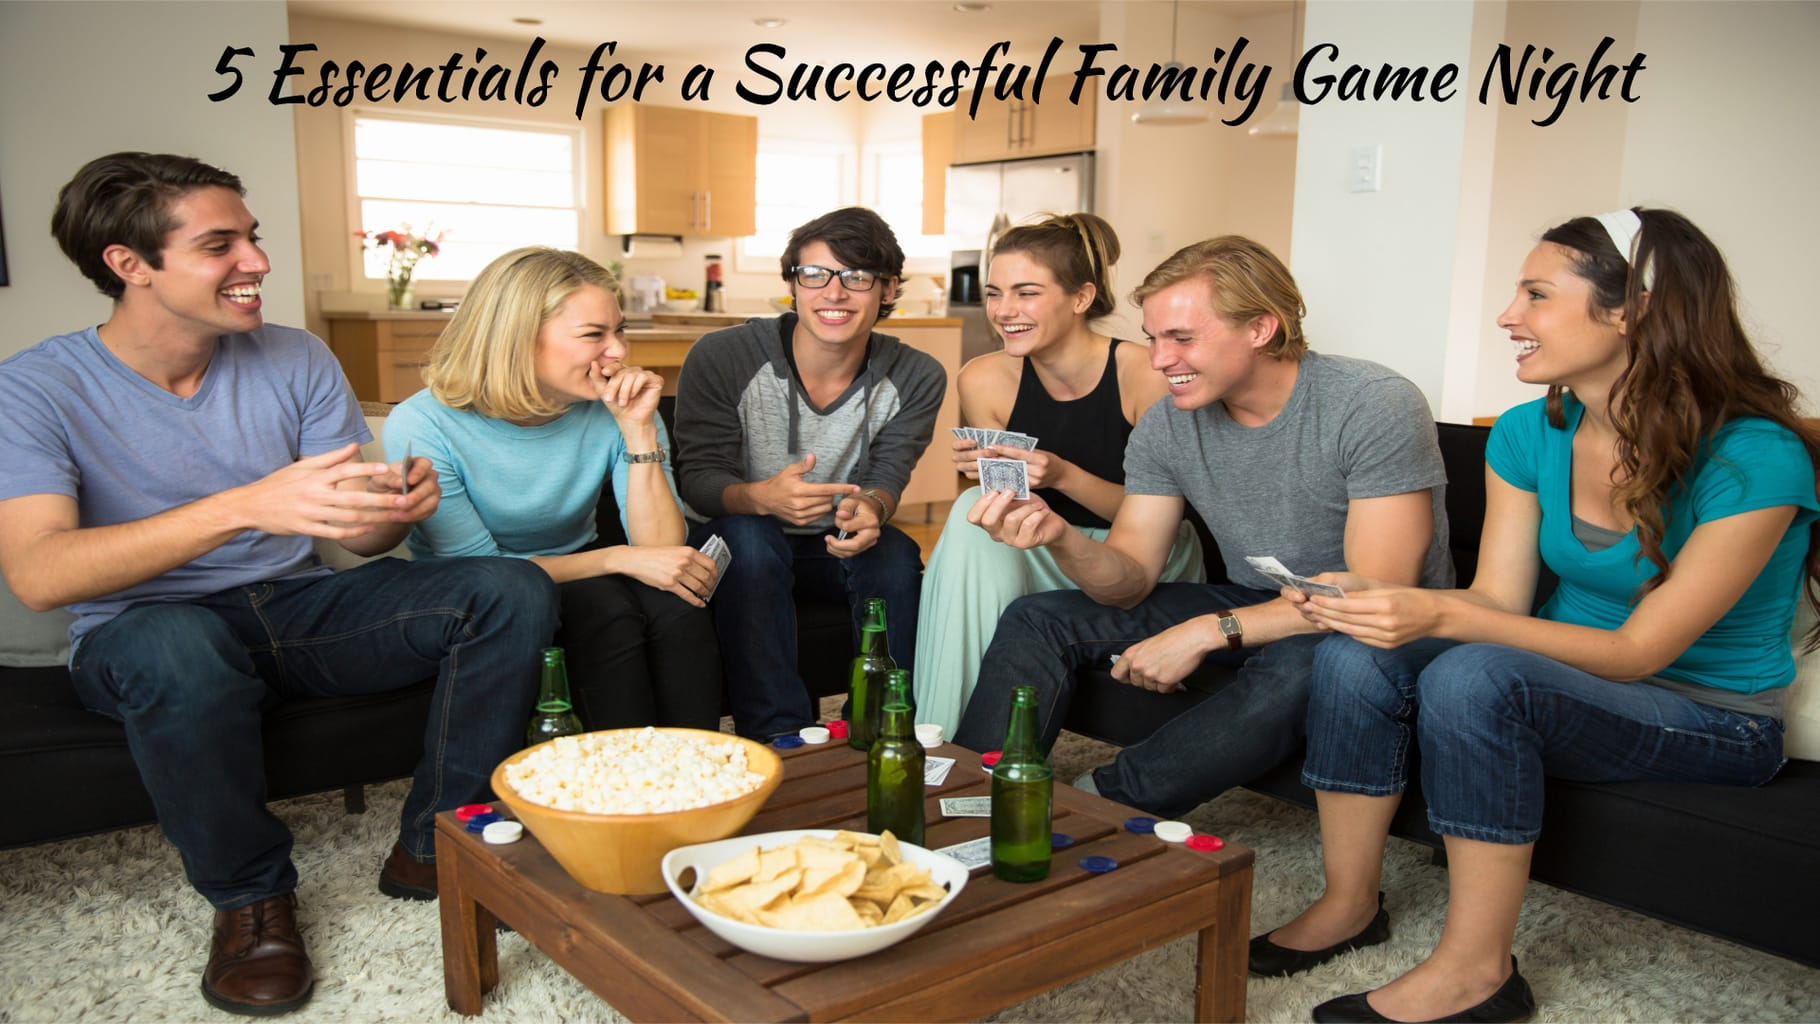 5 Essentials for a Successful Family Game Night